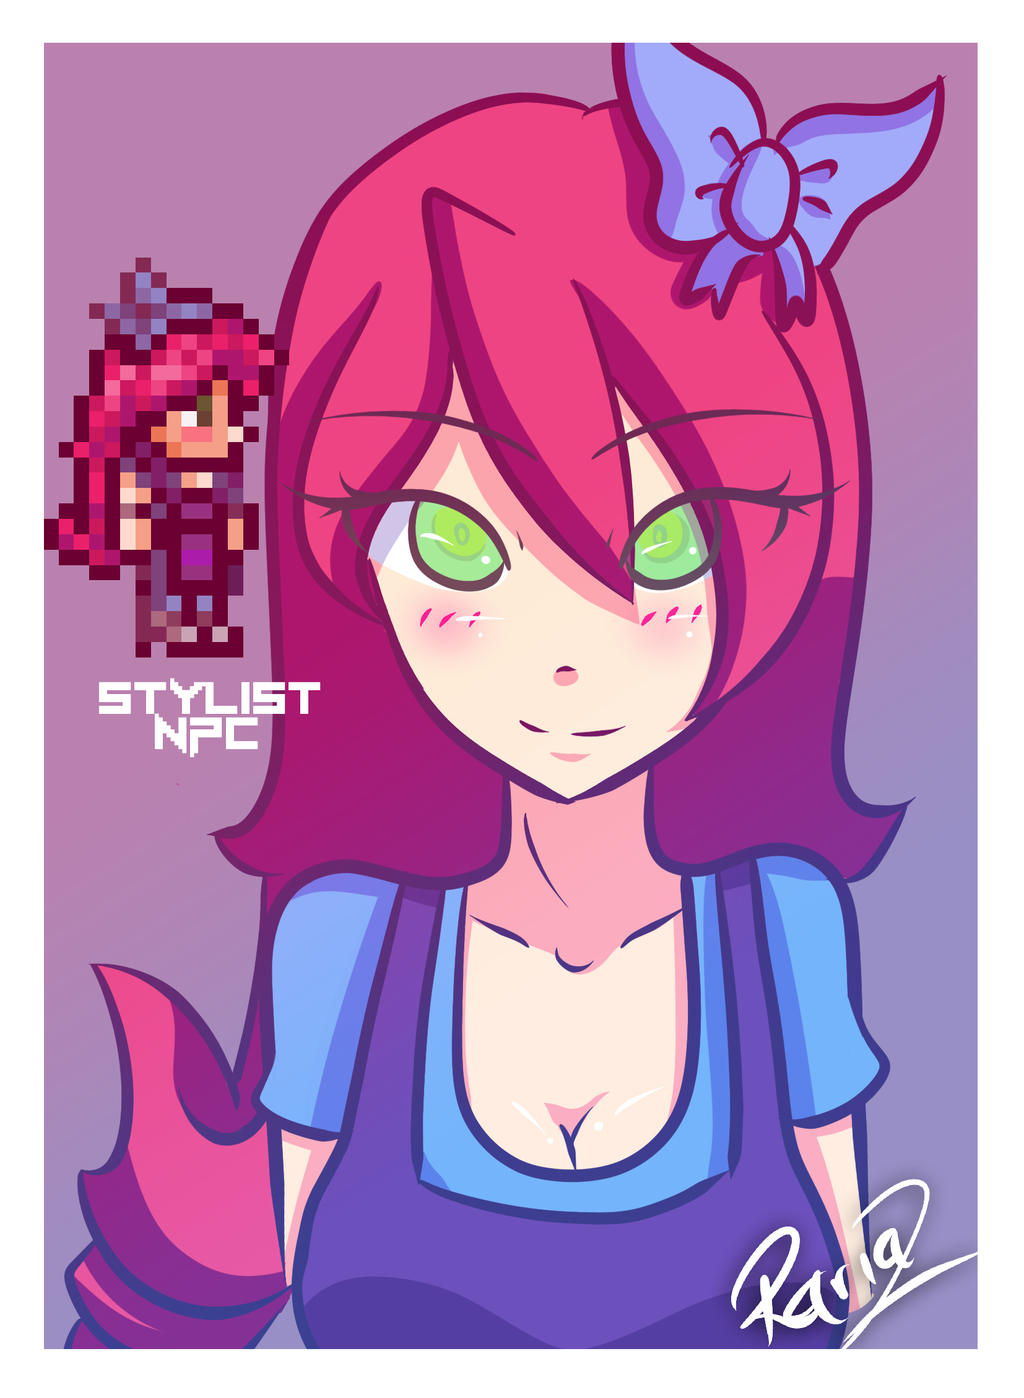 Anime Characters In Terraria : Stylist terraria npc rariaz by on deviantart